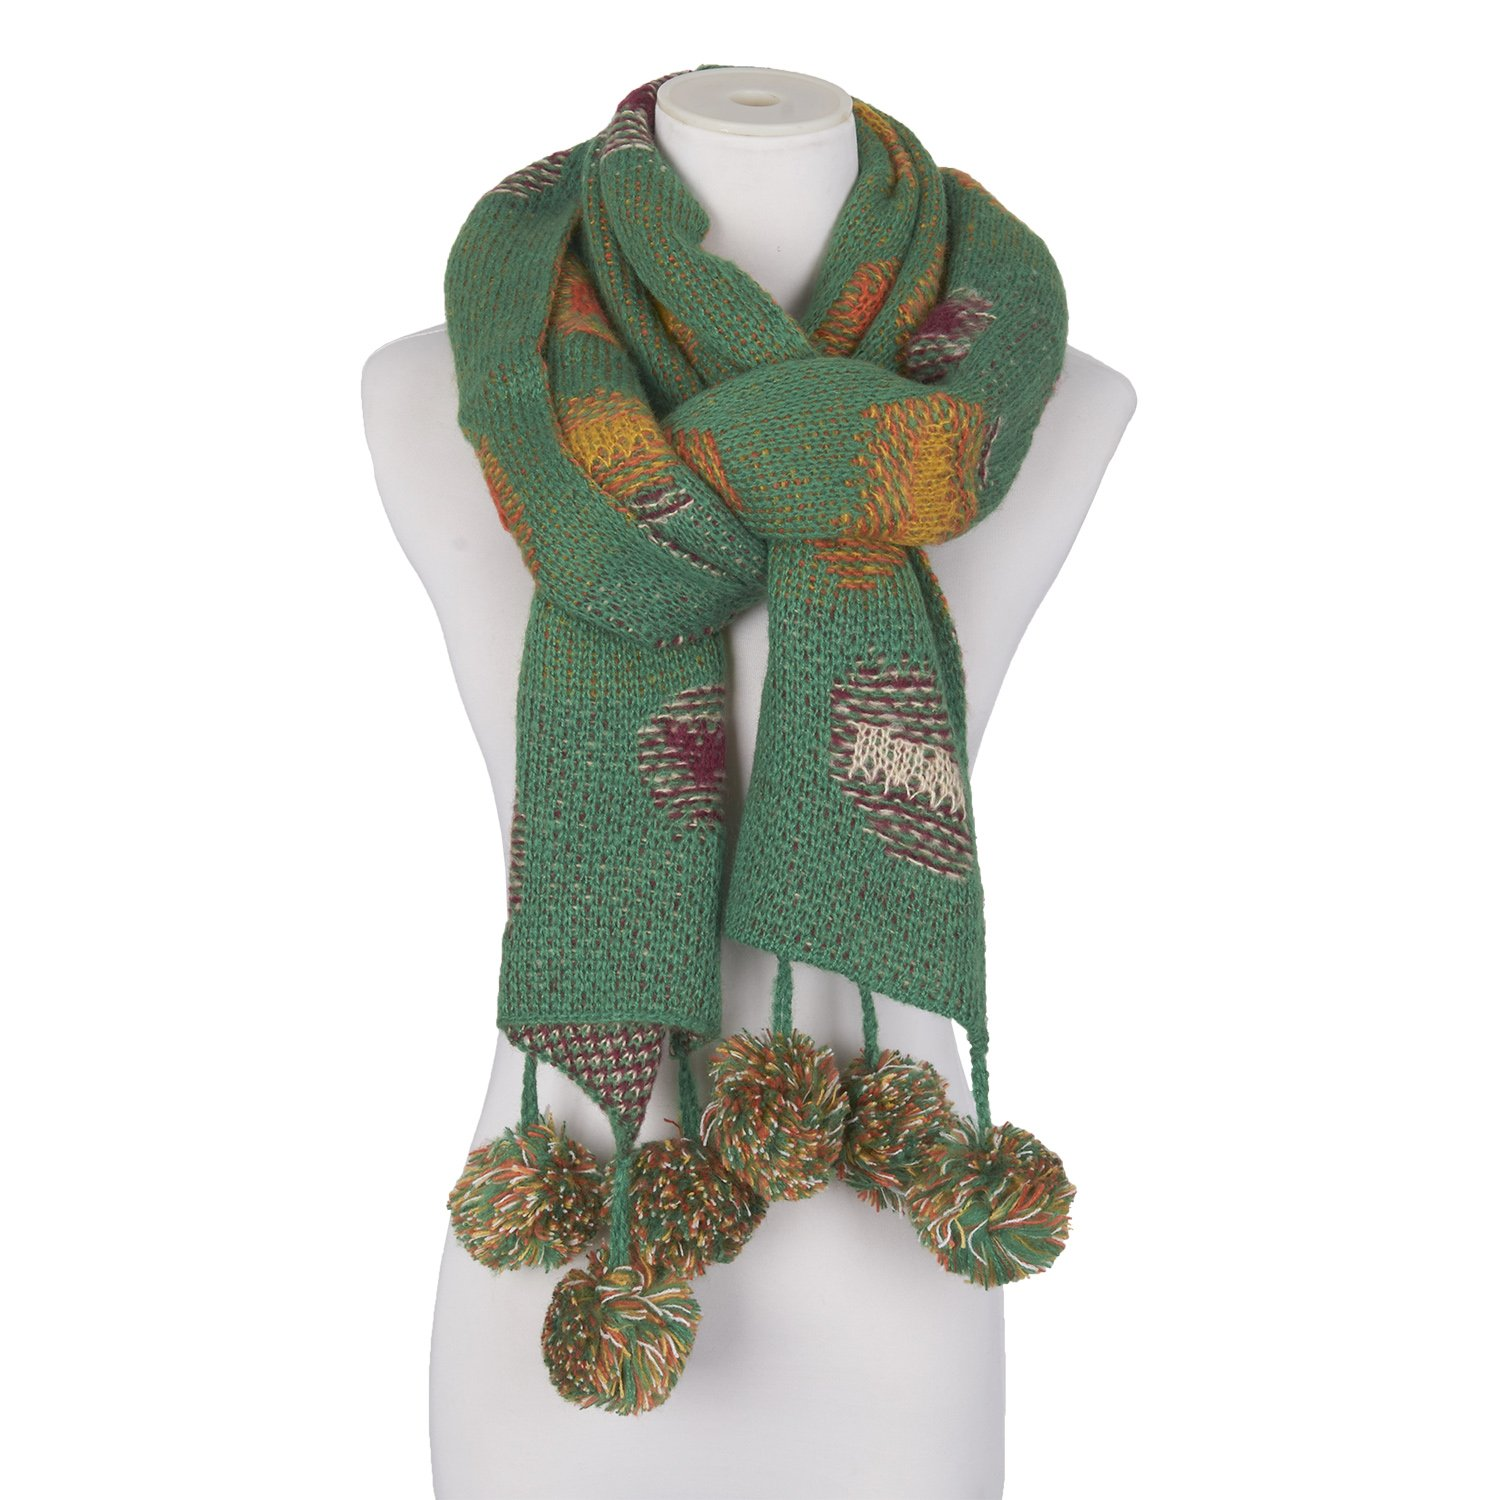 Double Face Knit Jacquard Weave Patch Scarf Muffler Colorful Warm Fashion Girls